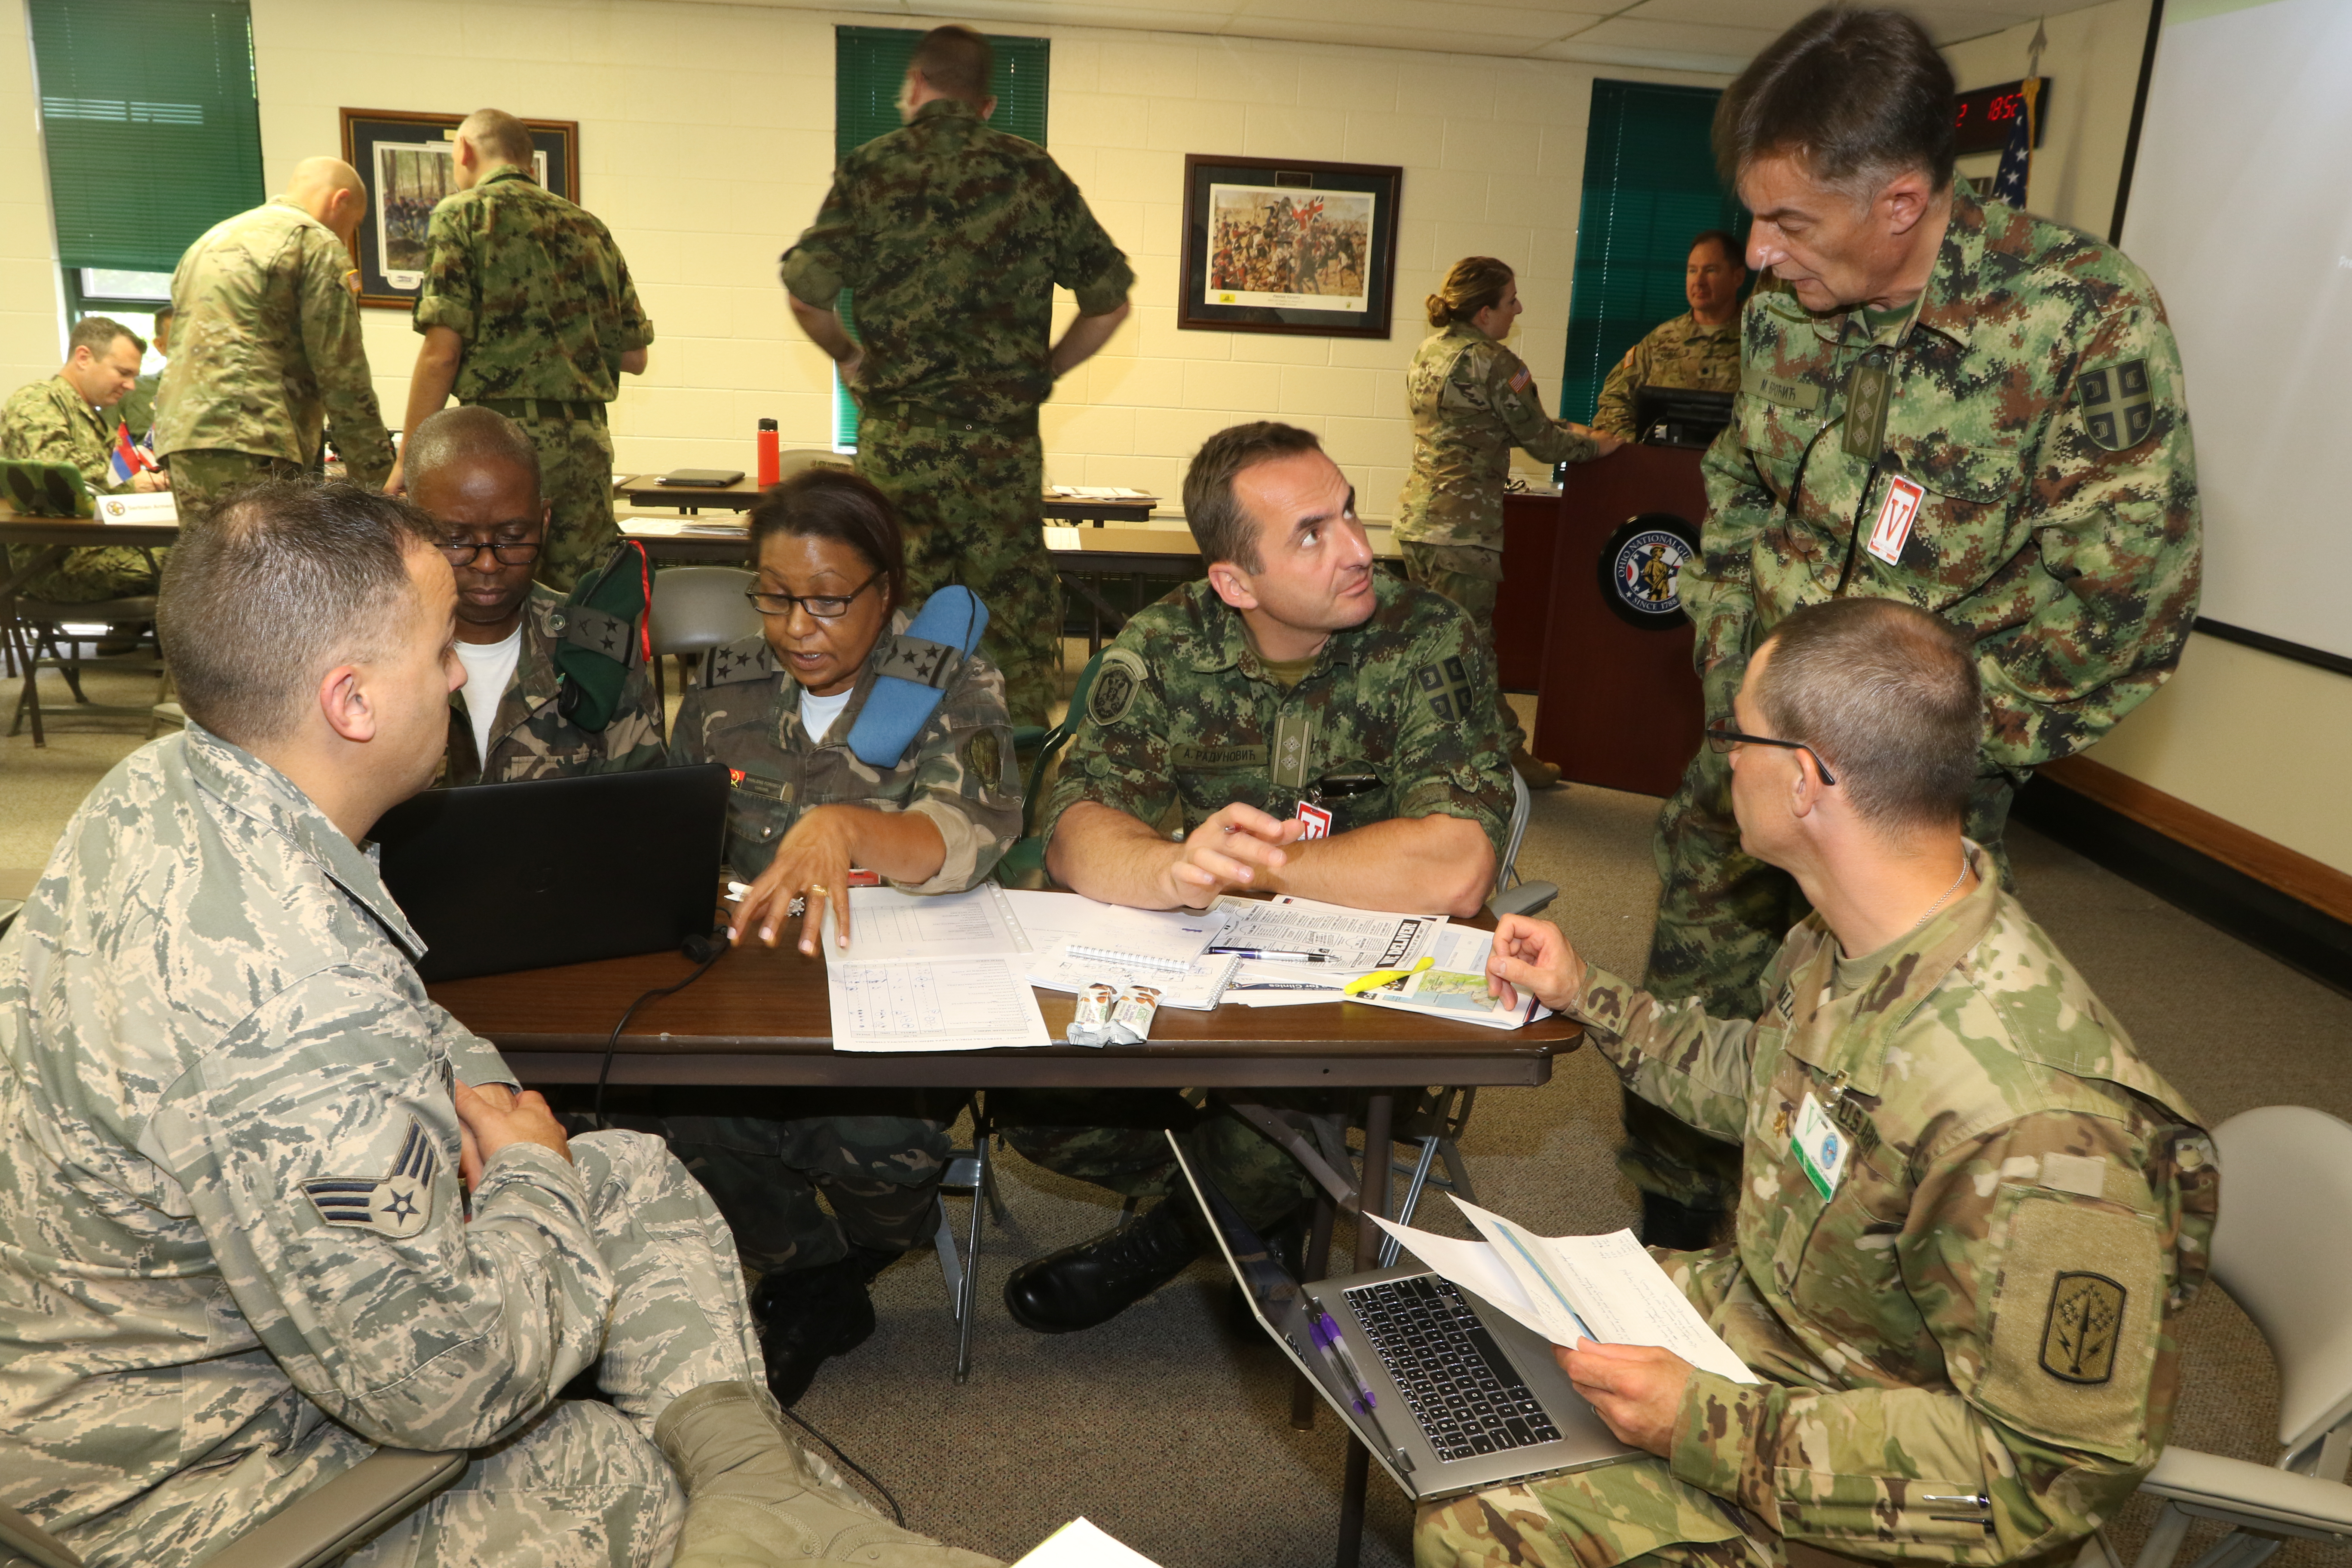 Representatives from the Serbian and Angolan Armed Forces meet with members of the Ohio National Guard June 28, 2017, at Joint Force Headquarters-Ohio, located at the Maj. Gen. Robert S. Beightler Armory in Columbus, Ohio. The group discussed plans for an upcoming Combined Medical Engagement set to take place in Angola later this year. (Ohio National Guard photo by Staff Sgt. Michael Carden)